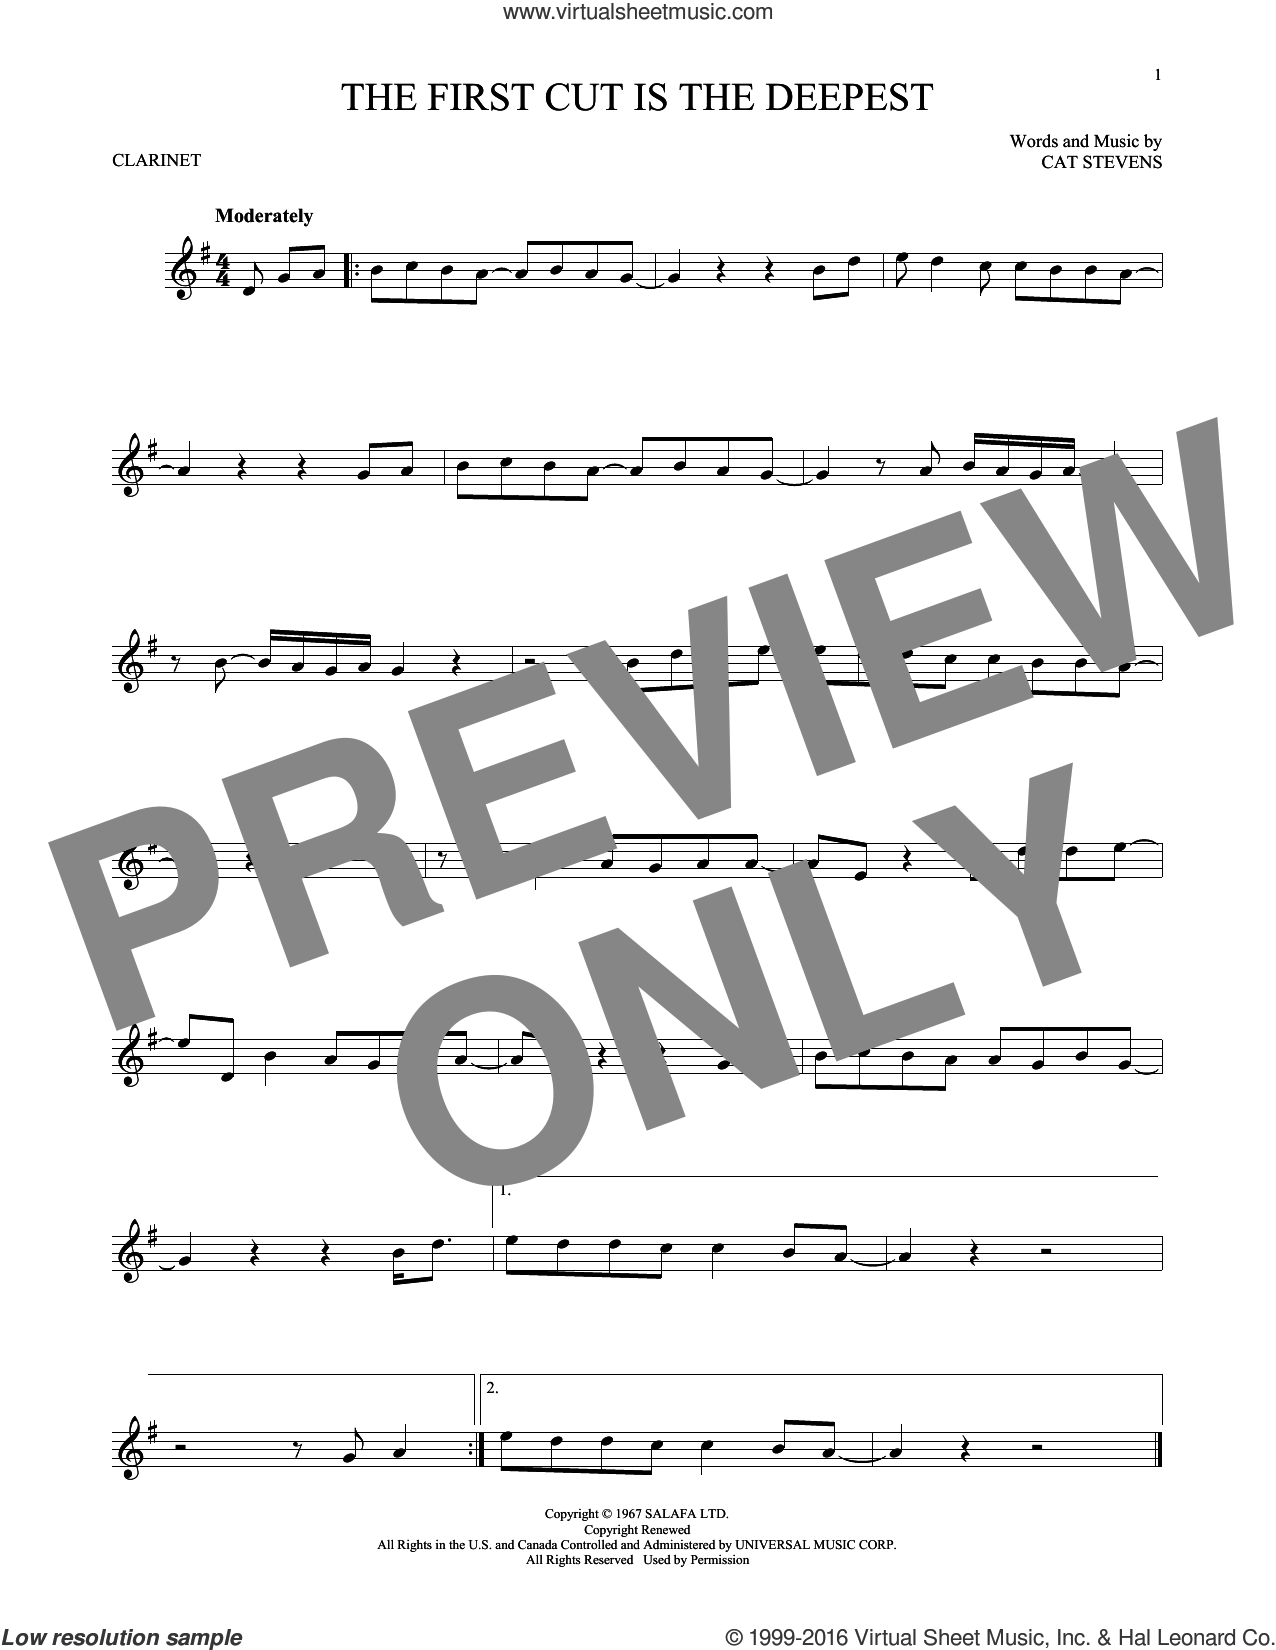 The First Cut Is The Deepest sheet music for clarinet solo by Cat Stevens, Rod Stewart and Sheryl Crow, intermediate skill level